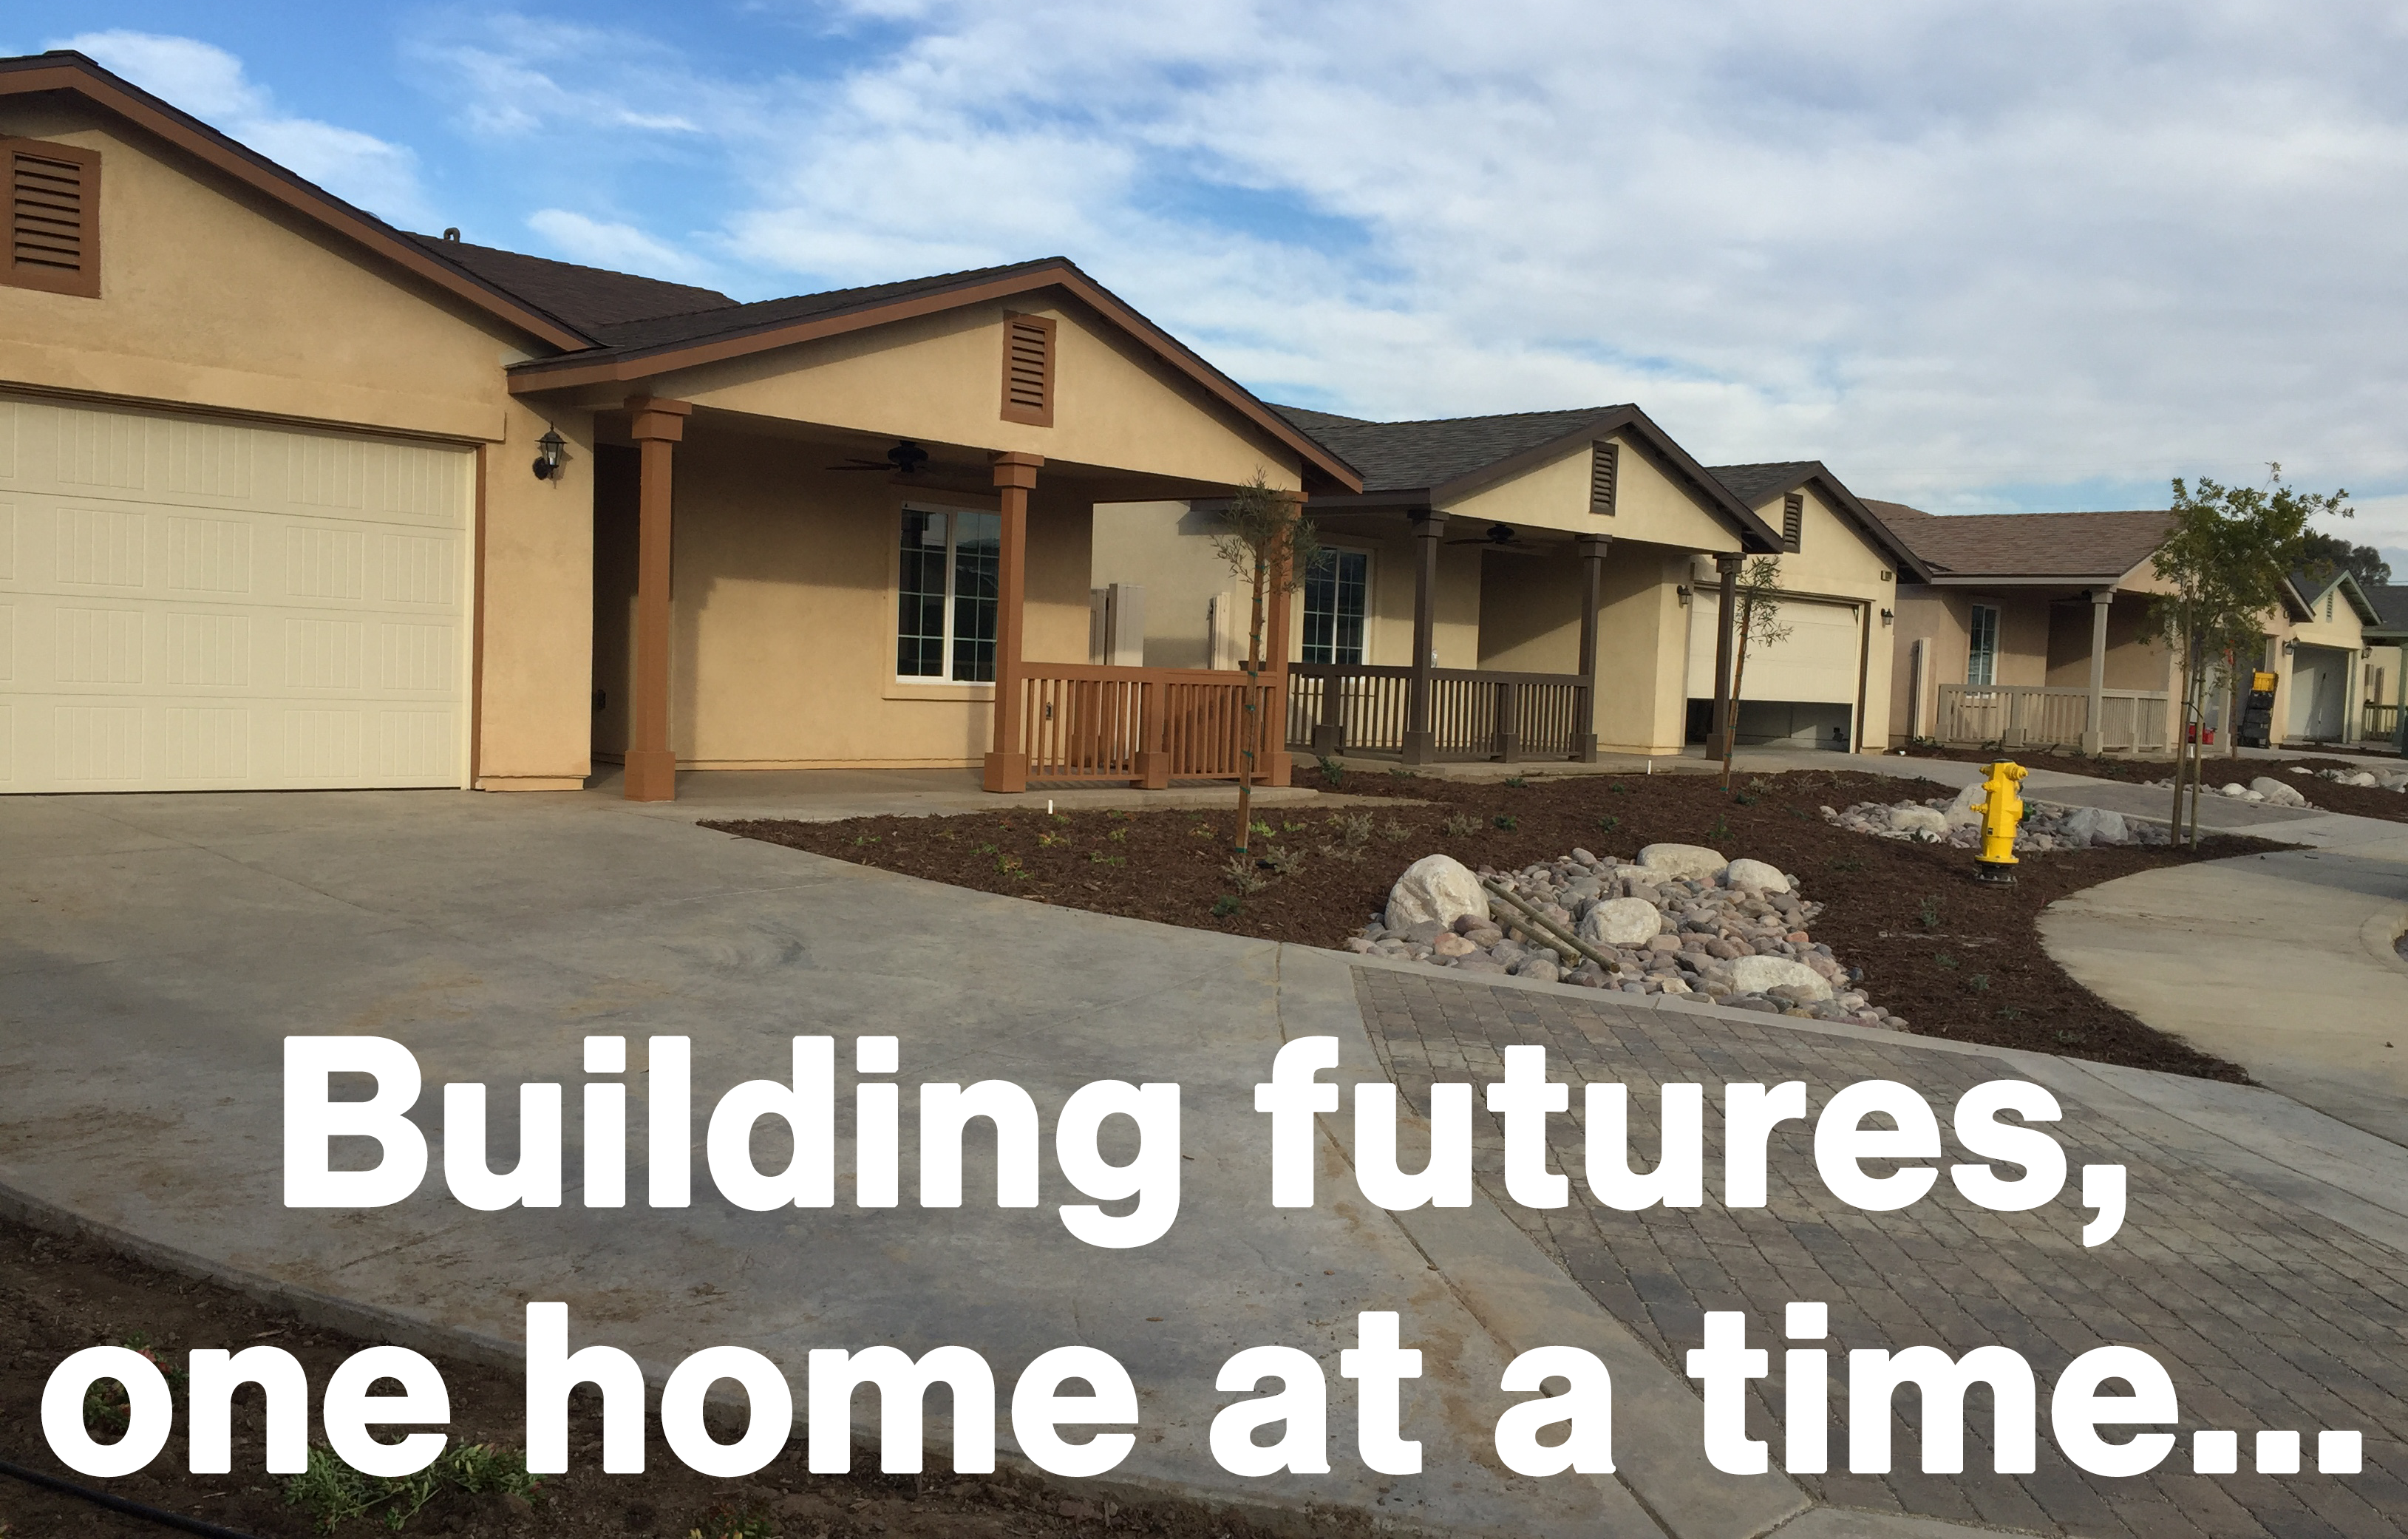 Building futures, one home at a time...